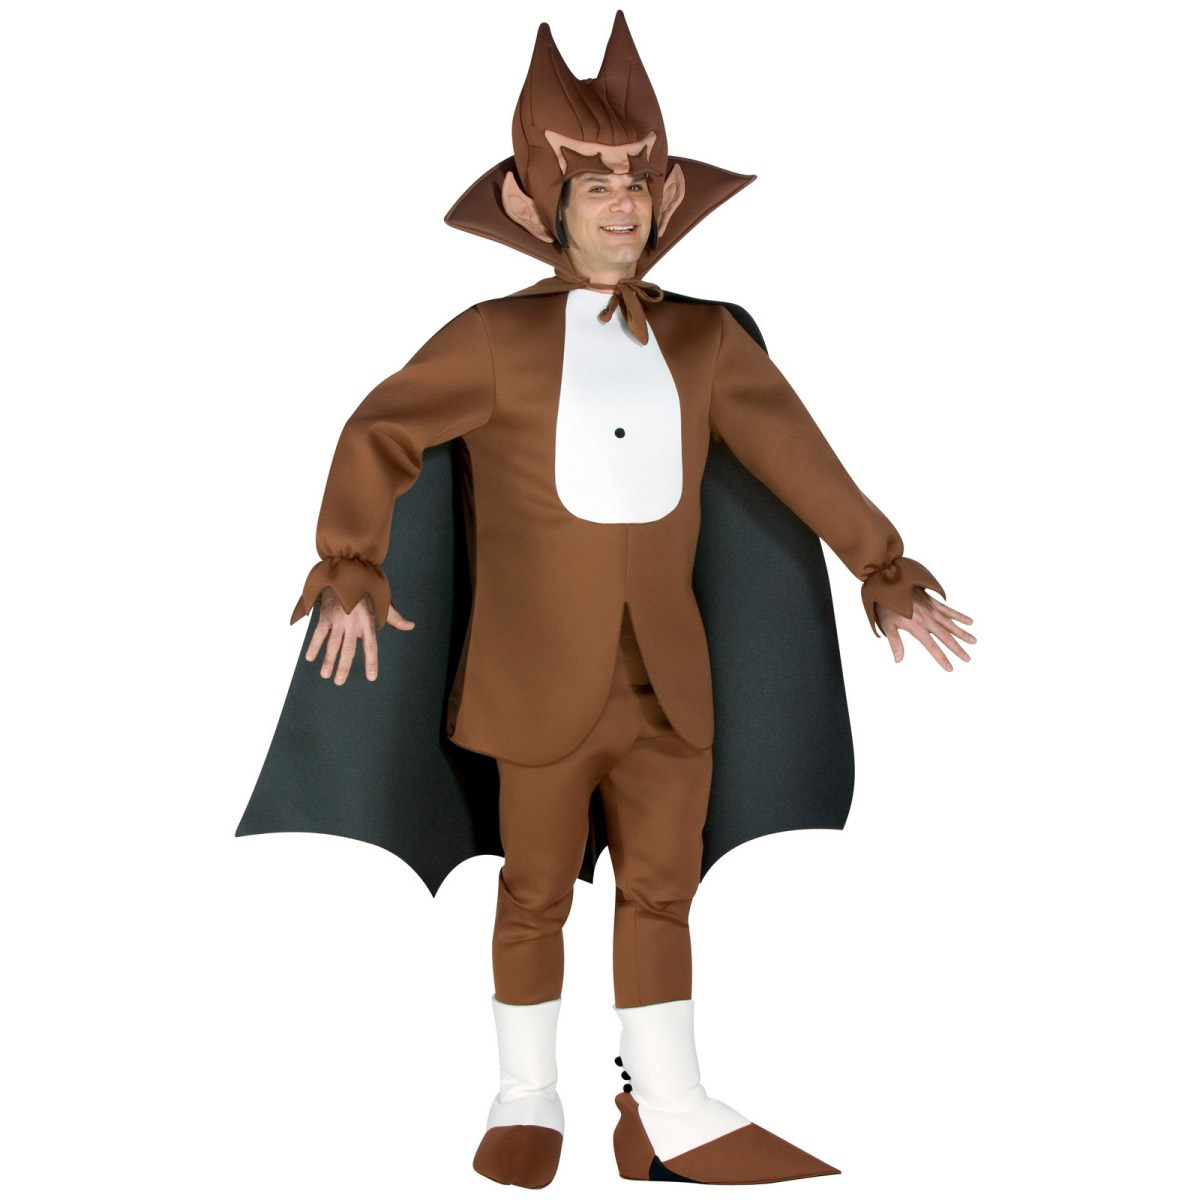 Count Chocula Halloween Costume  sc 1 st  The Green Head & Count Chocula Halloween Costume - The Green Head